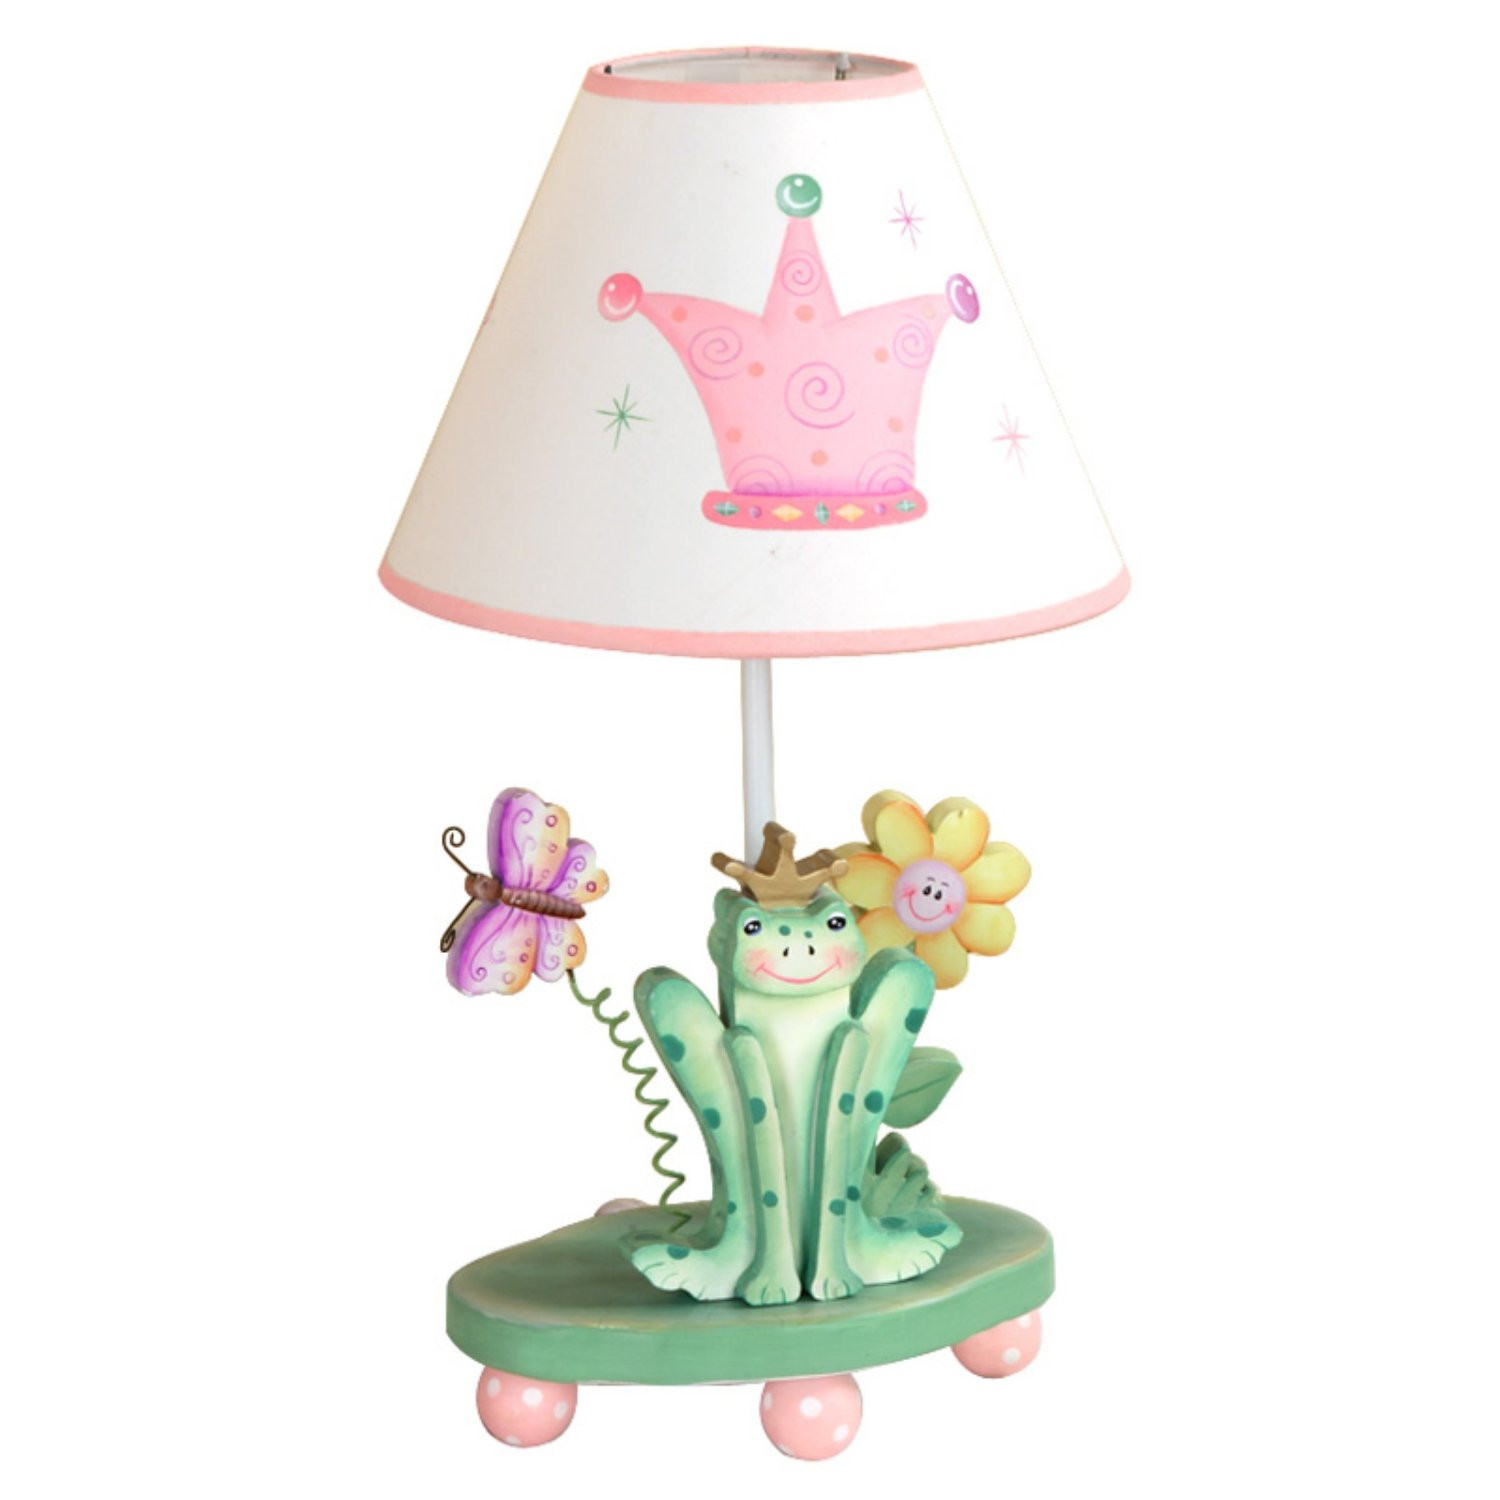 Best ideas about Kid Desk Lamps . Save or Pin Kids desk lamps Now.